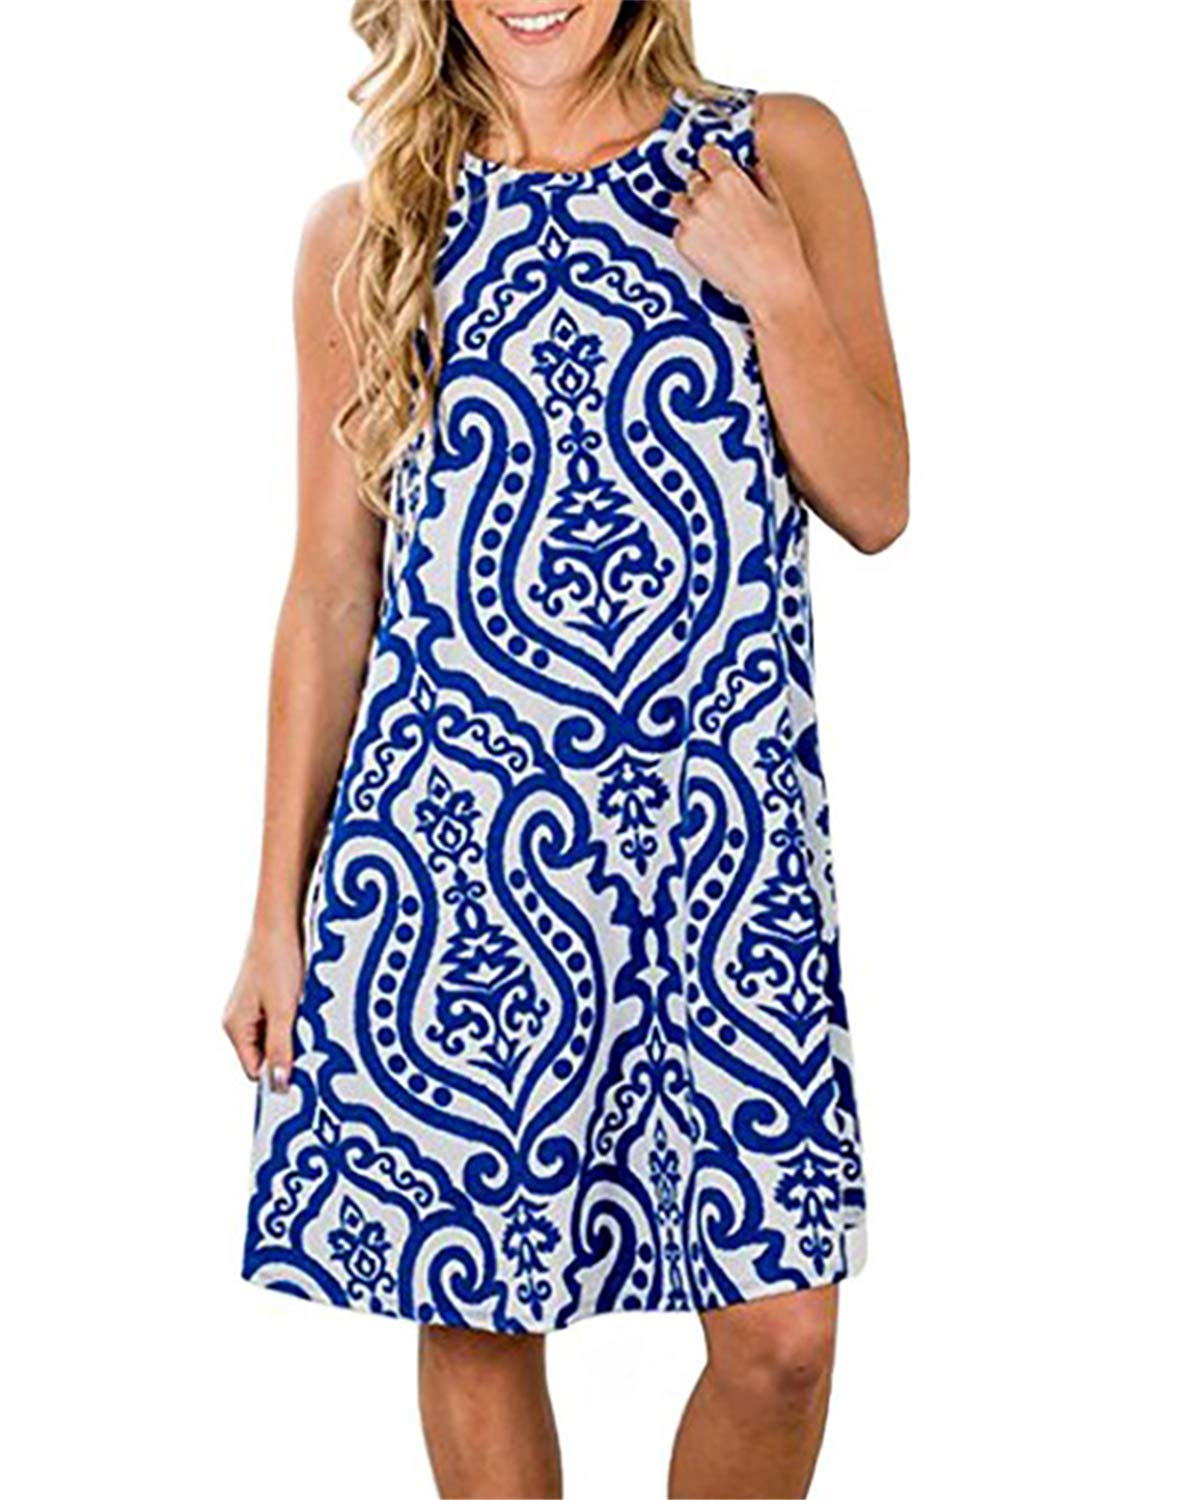 Available at Amazon: Mai Poetry Women's Casual Floral Printed Swing Dress Sundress with Pockets